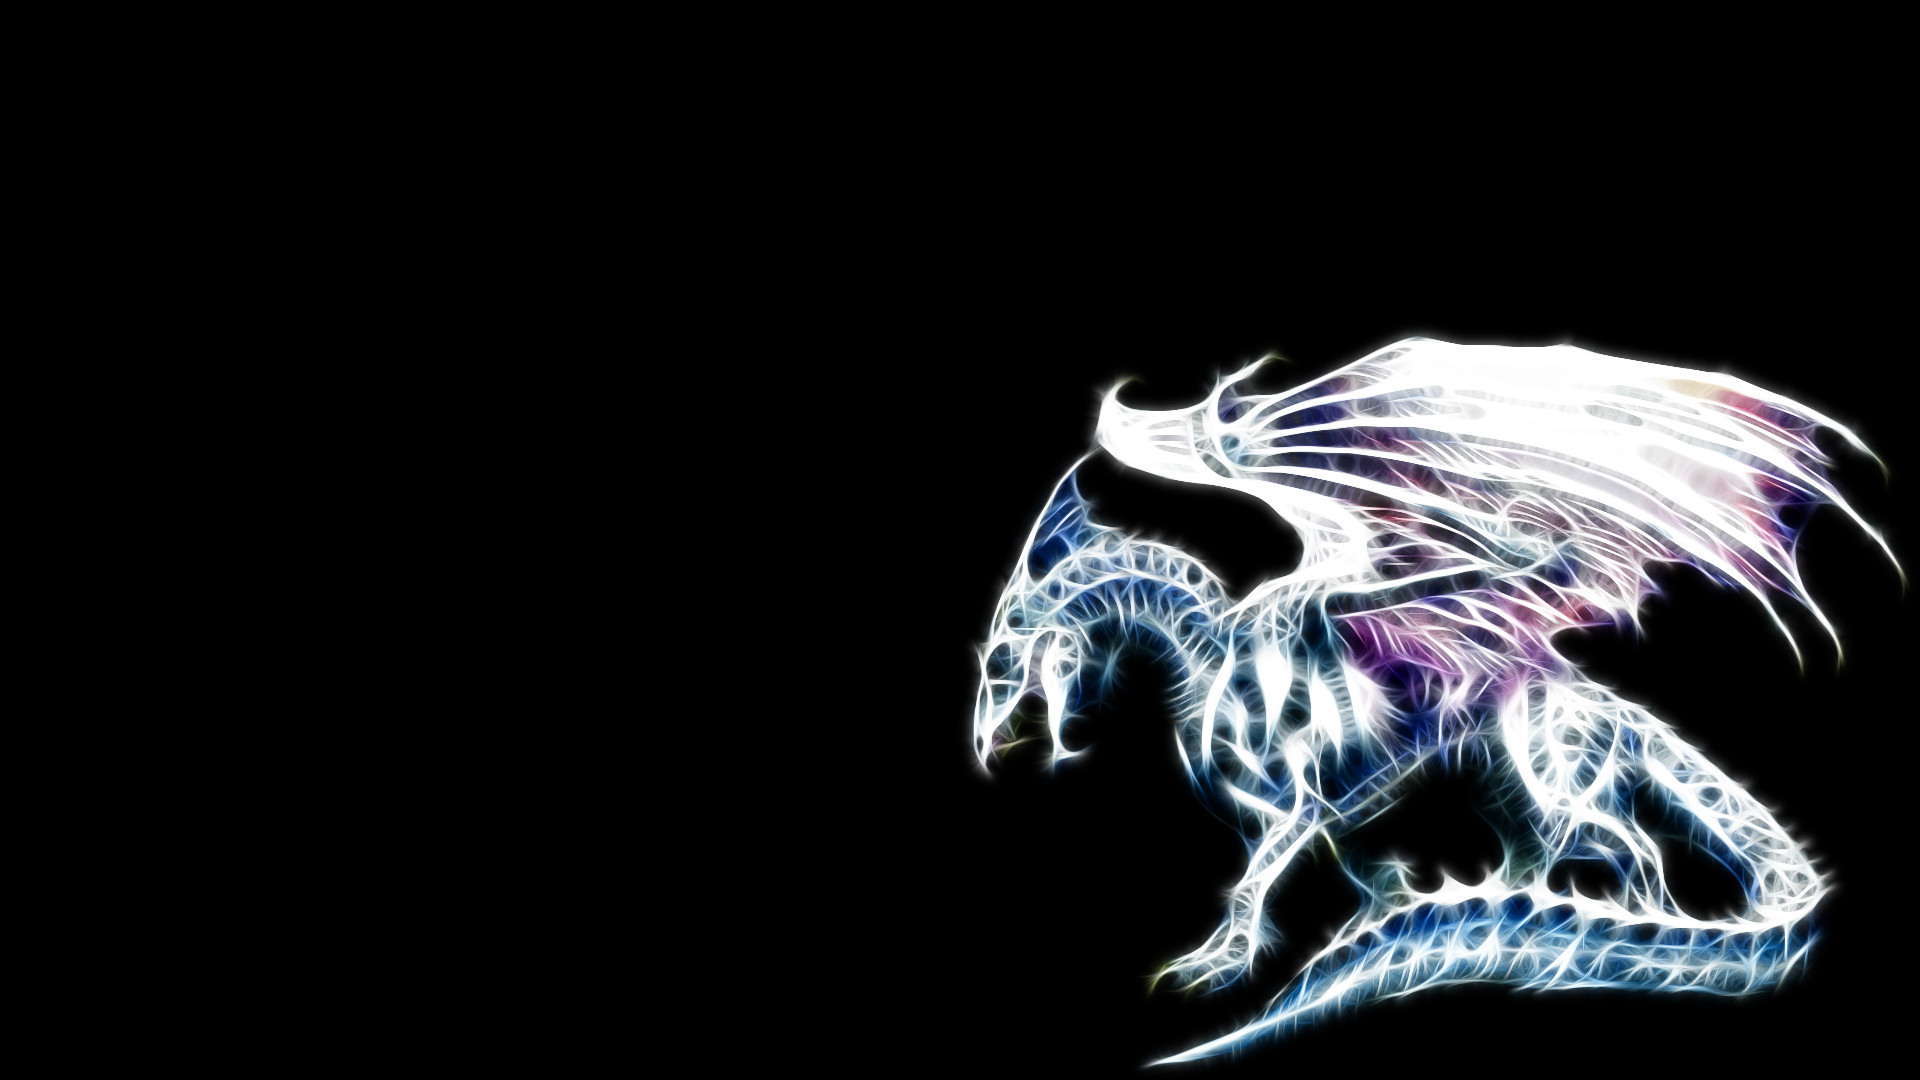 1920x1080 Dragon Wallpapers | Best Wallpapers